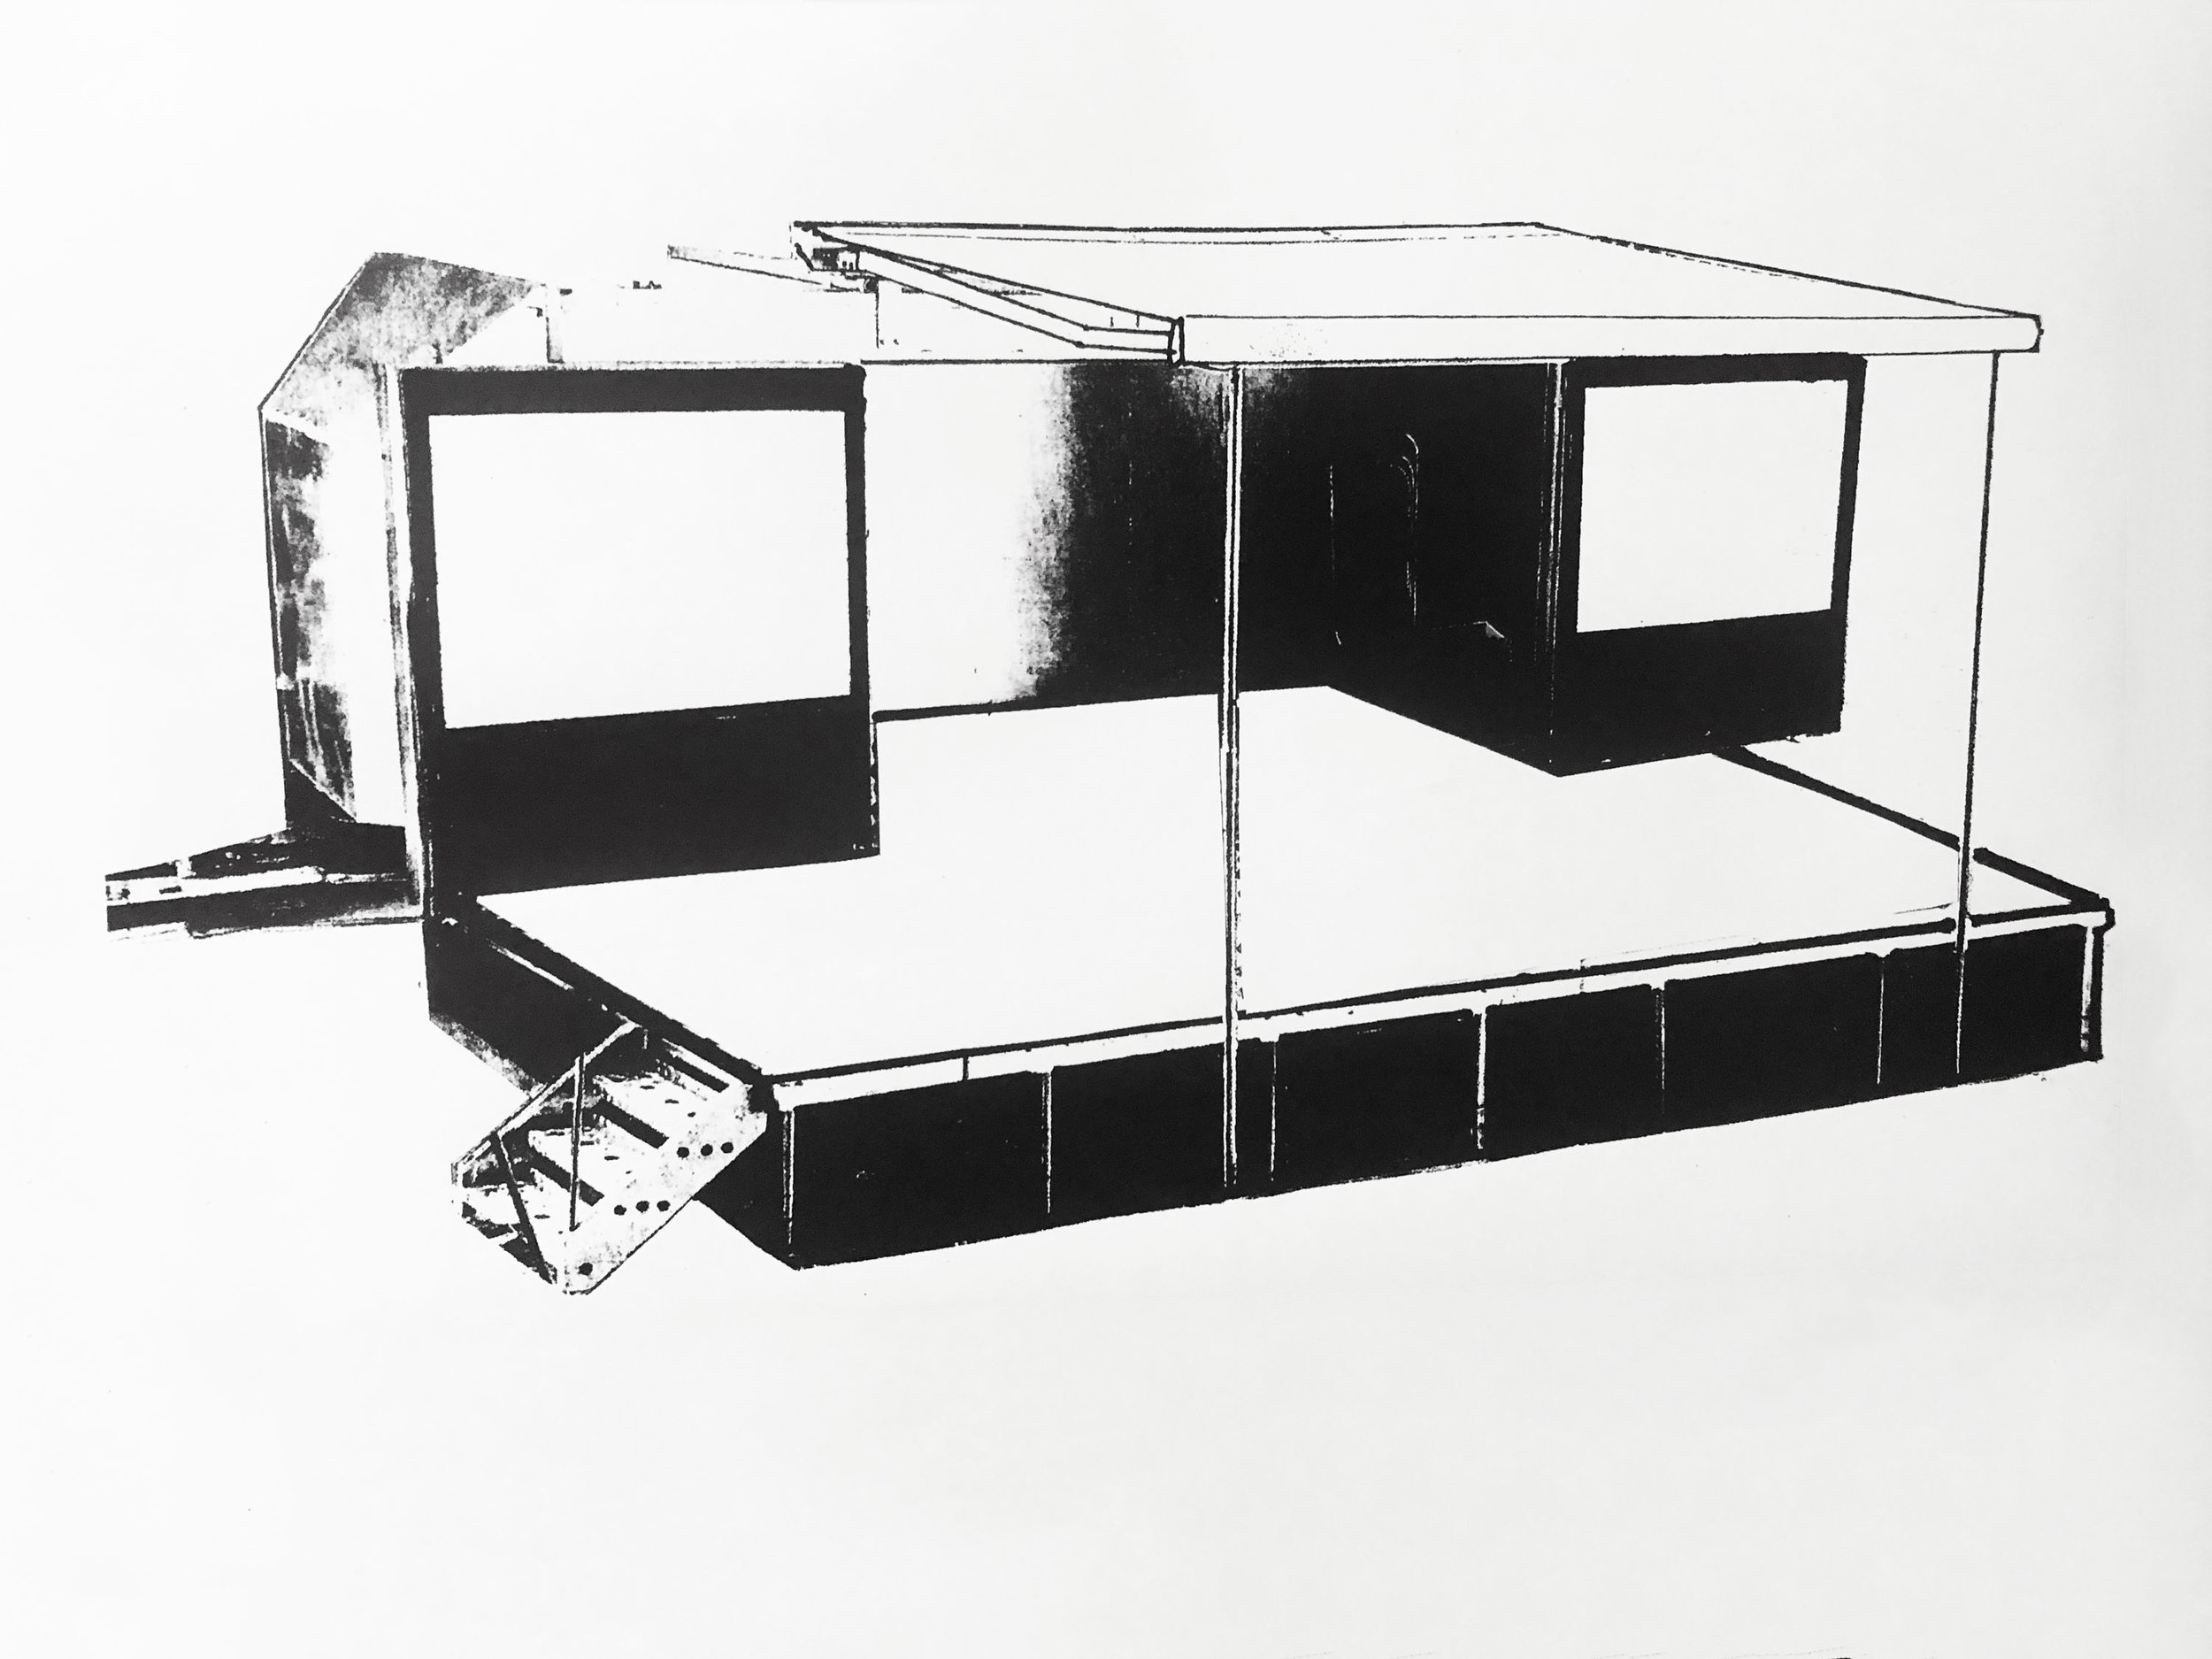 Proposed extension to the trailer stage